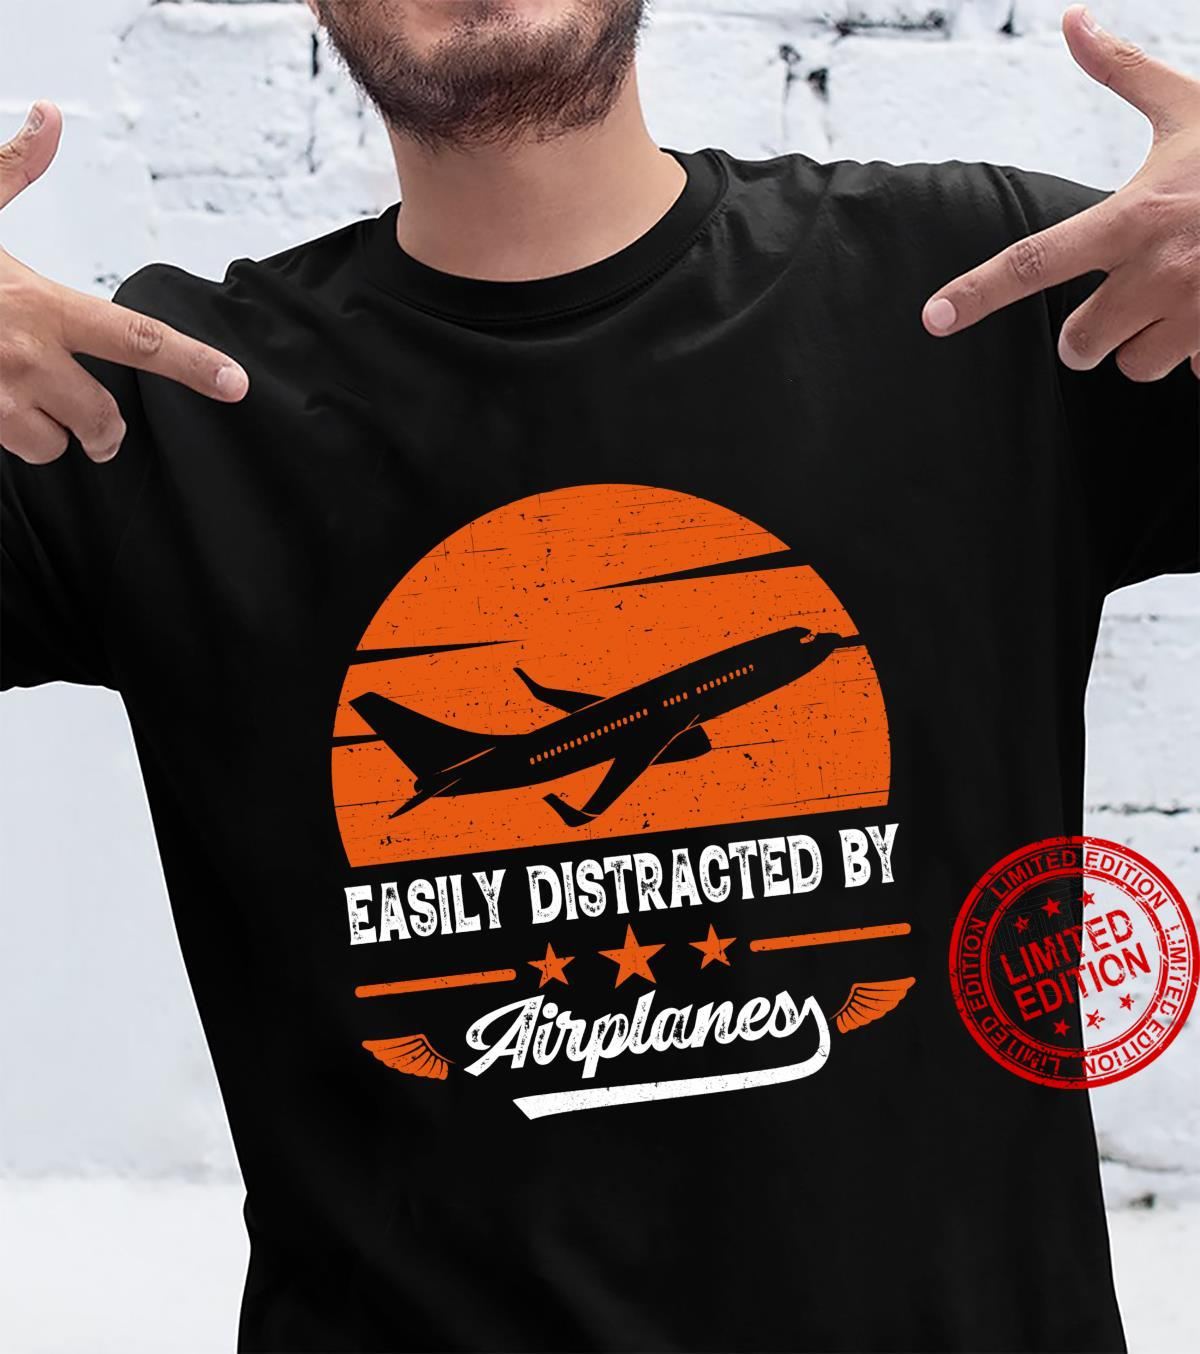 Easily Distracted by Airplanes Shirt Vintage Pilot Flying Shirt